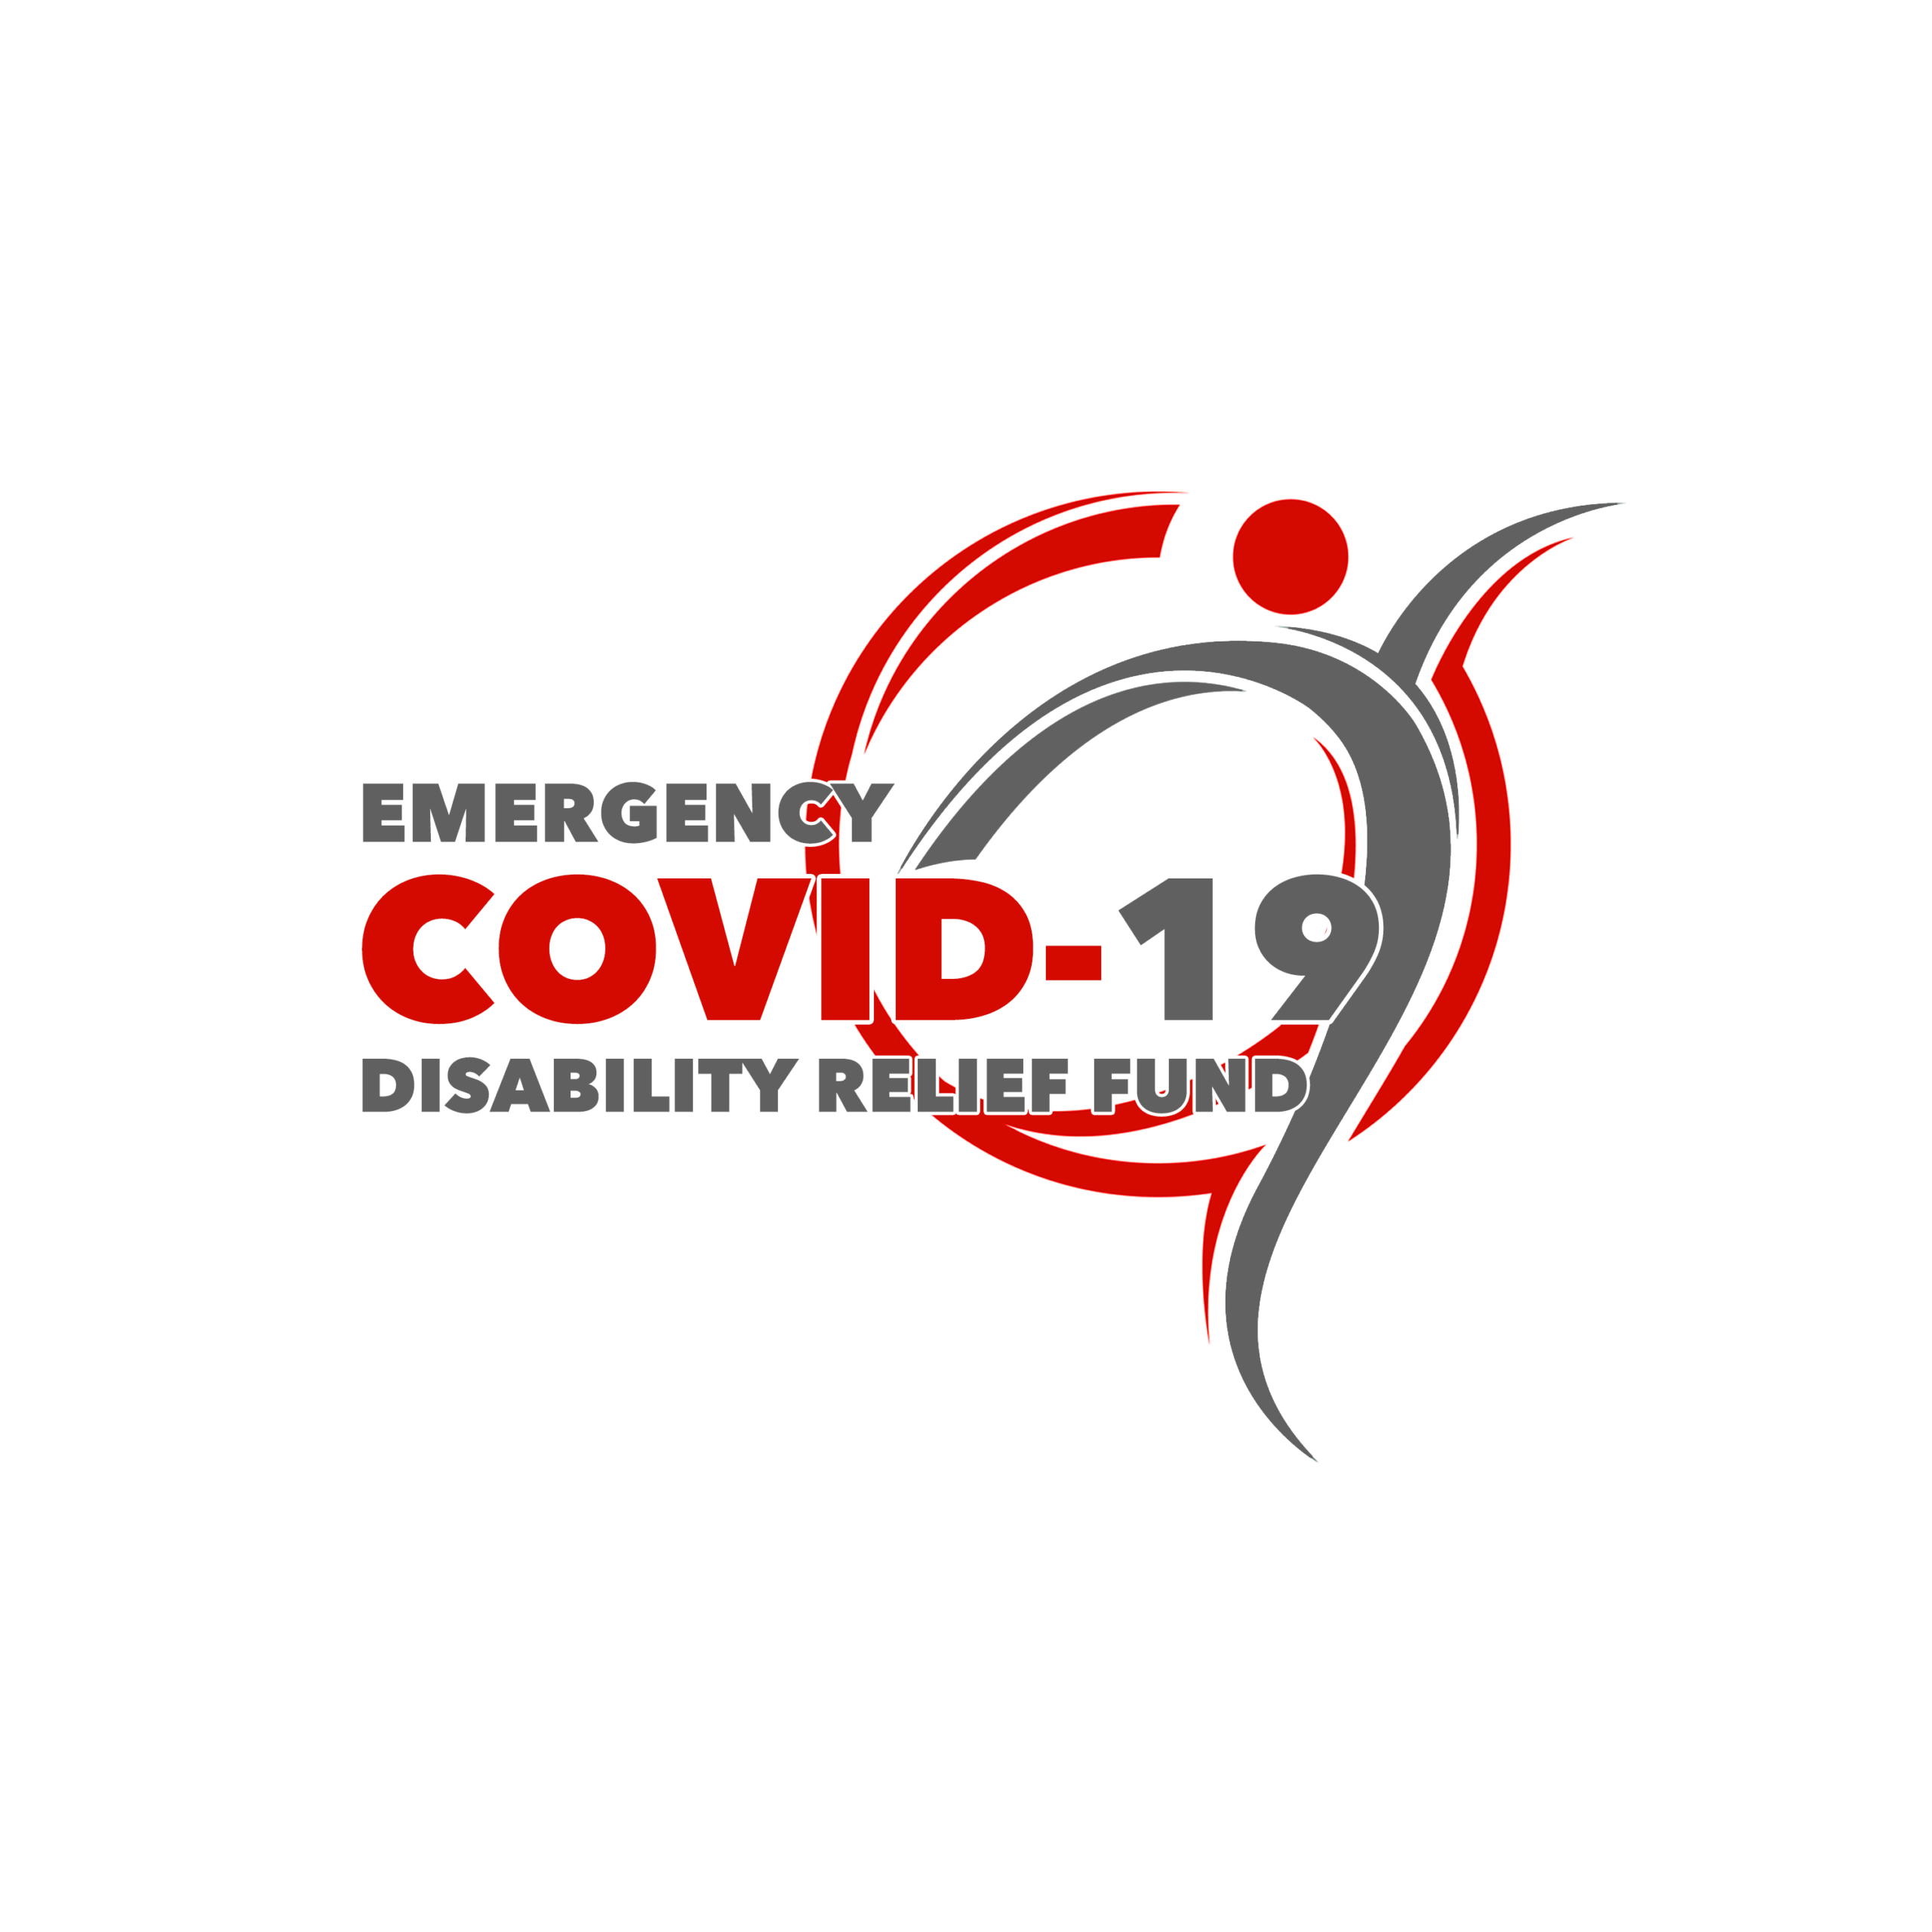 EMERGENCY COVID-19 Disability Relief Fund